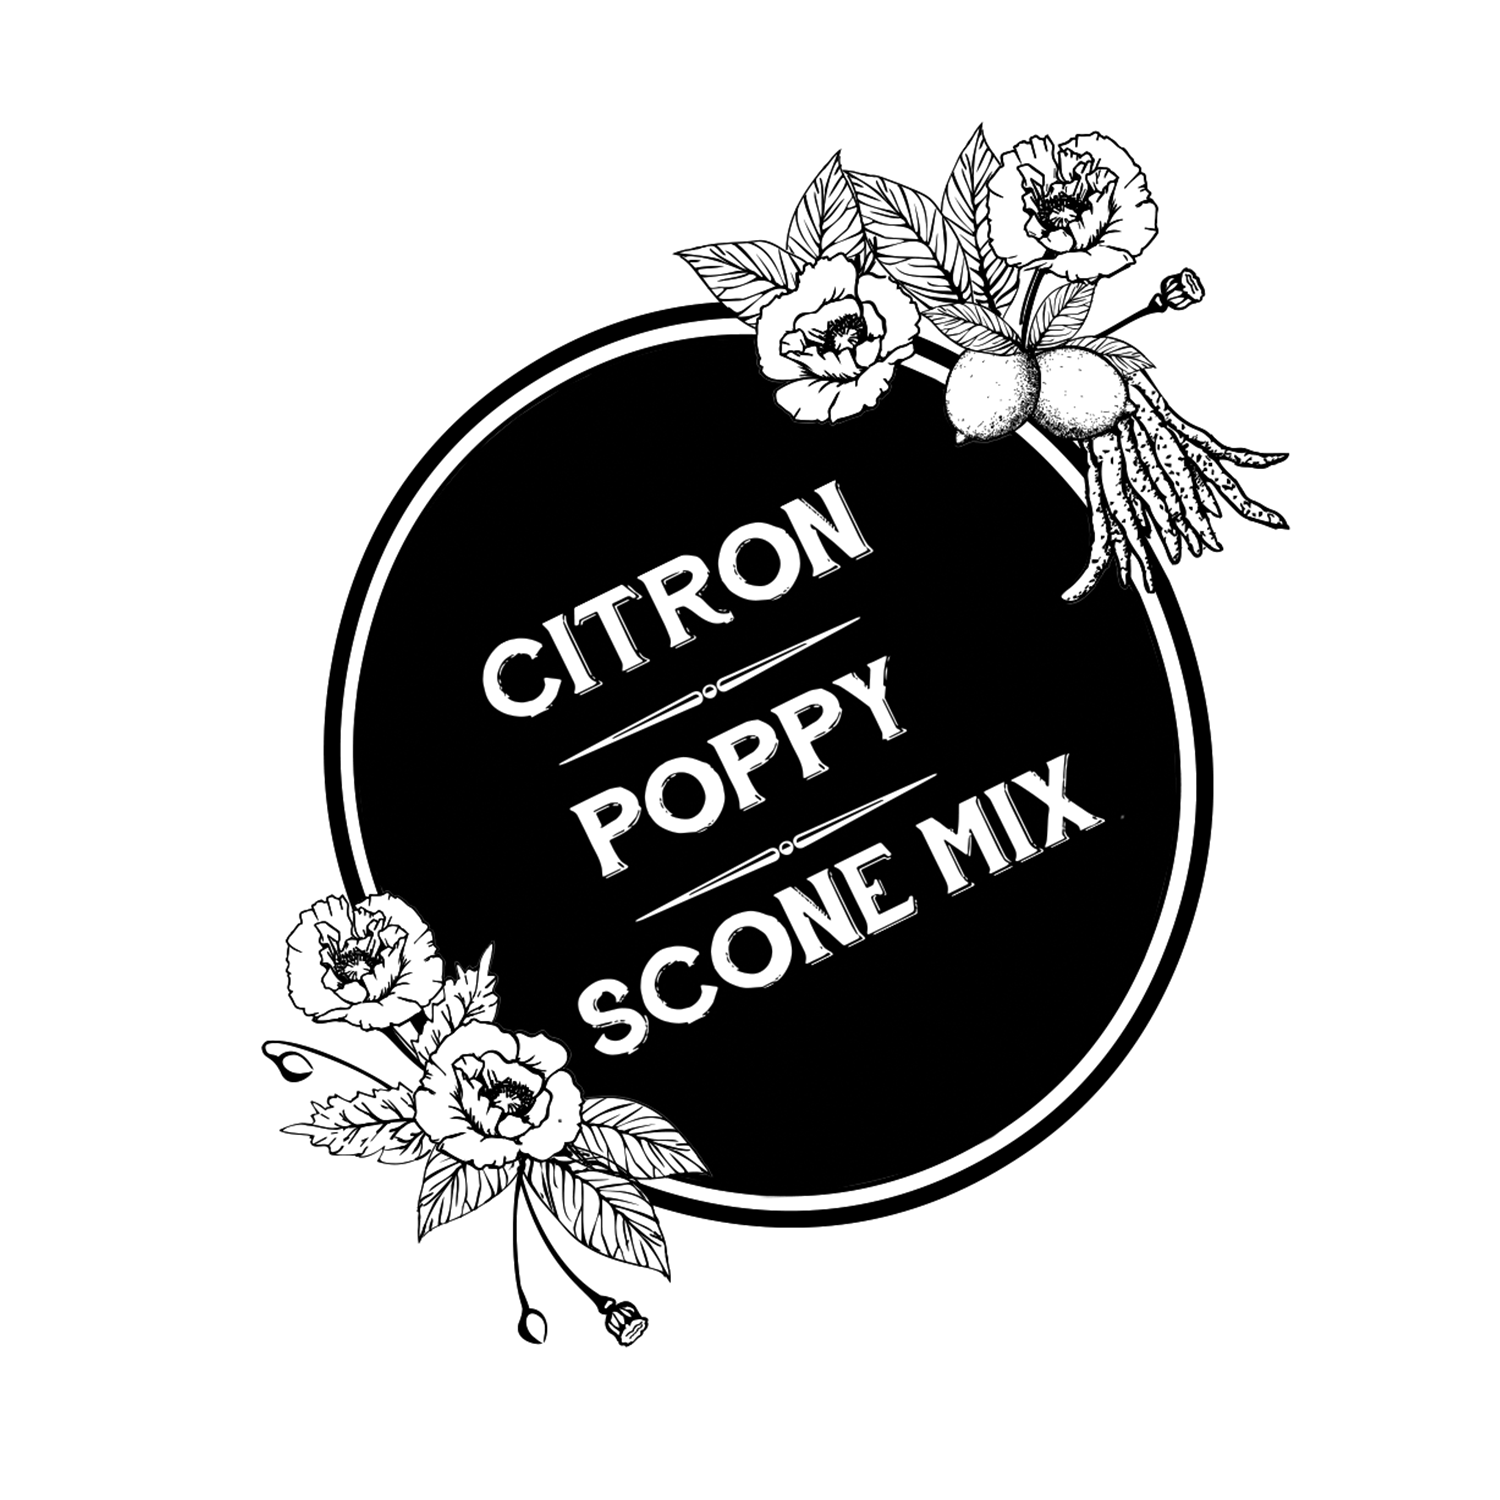 Citron-poppy-scone-logo-web.png